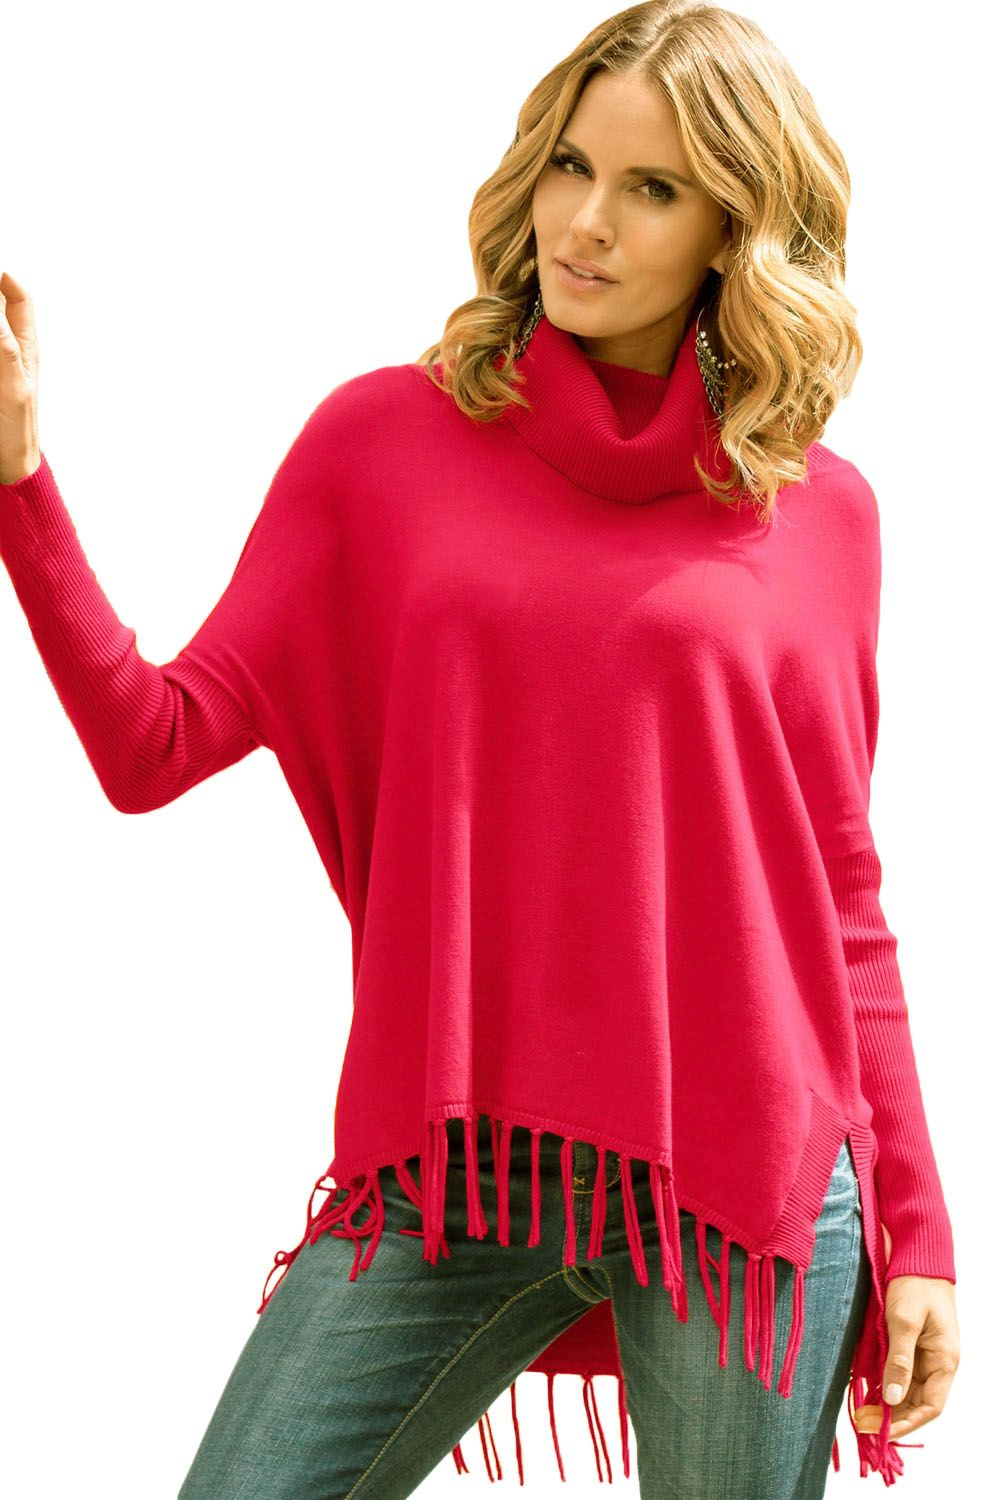 Red Turtleneck Fringe Hemline Tunic Sweater | Tunic | Pinterest ...